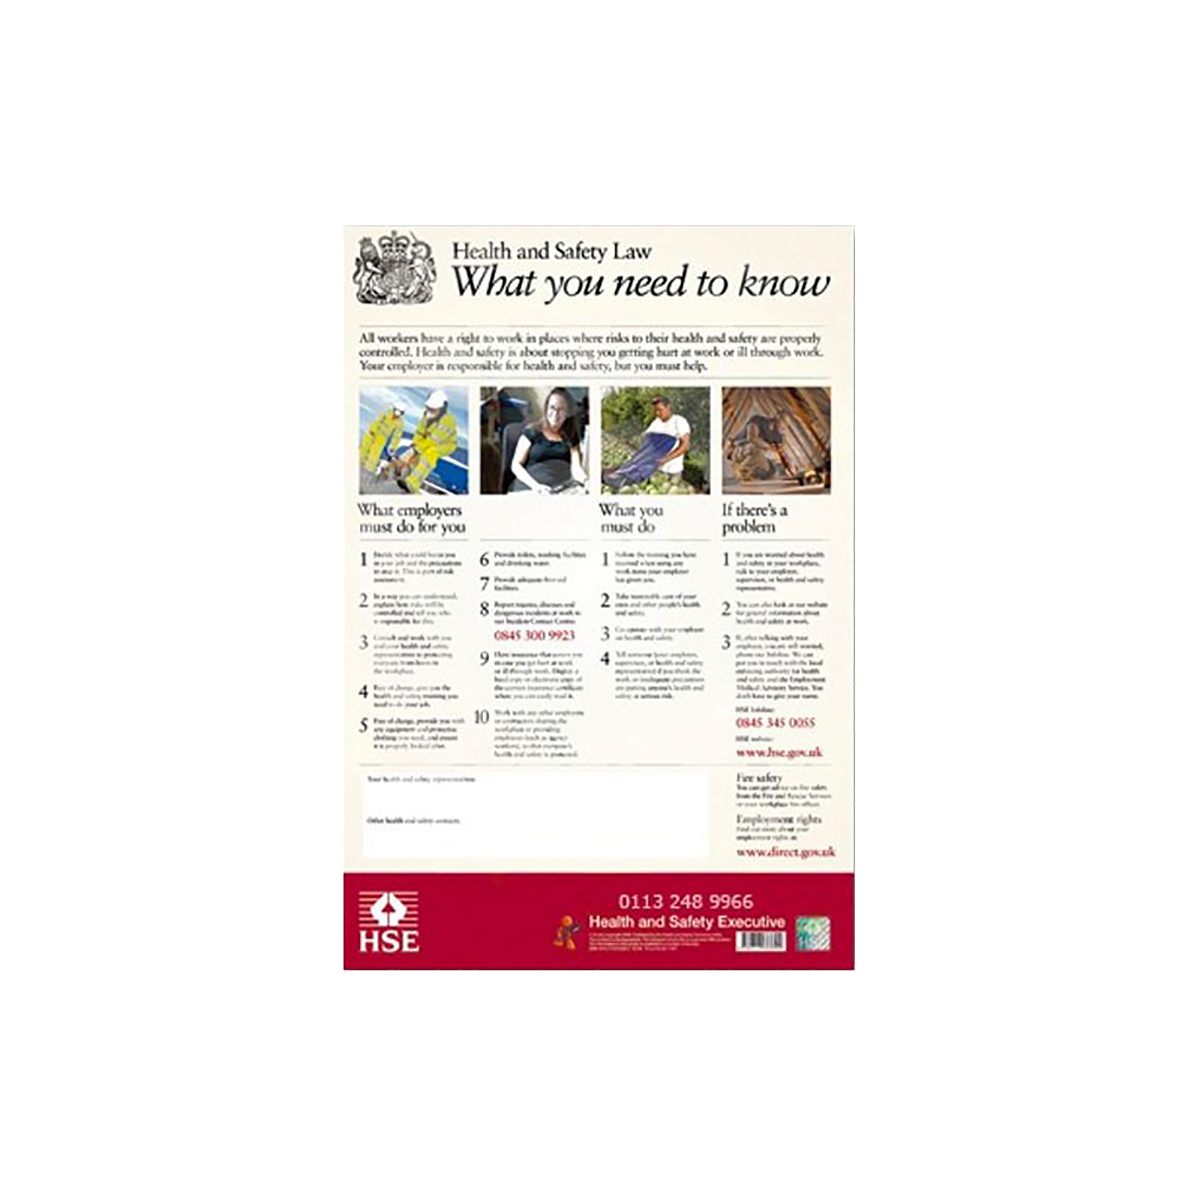 Health and Safety Law Poster 2009